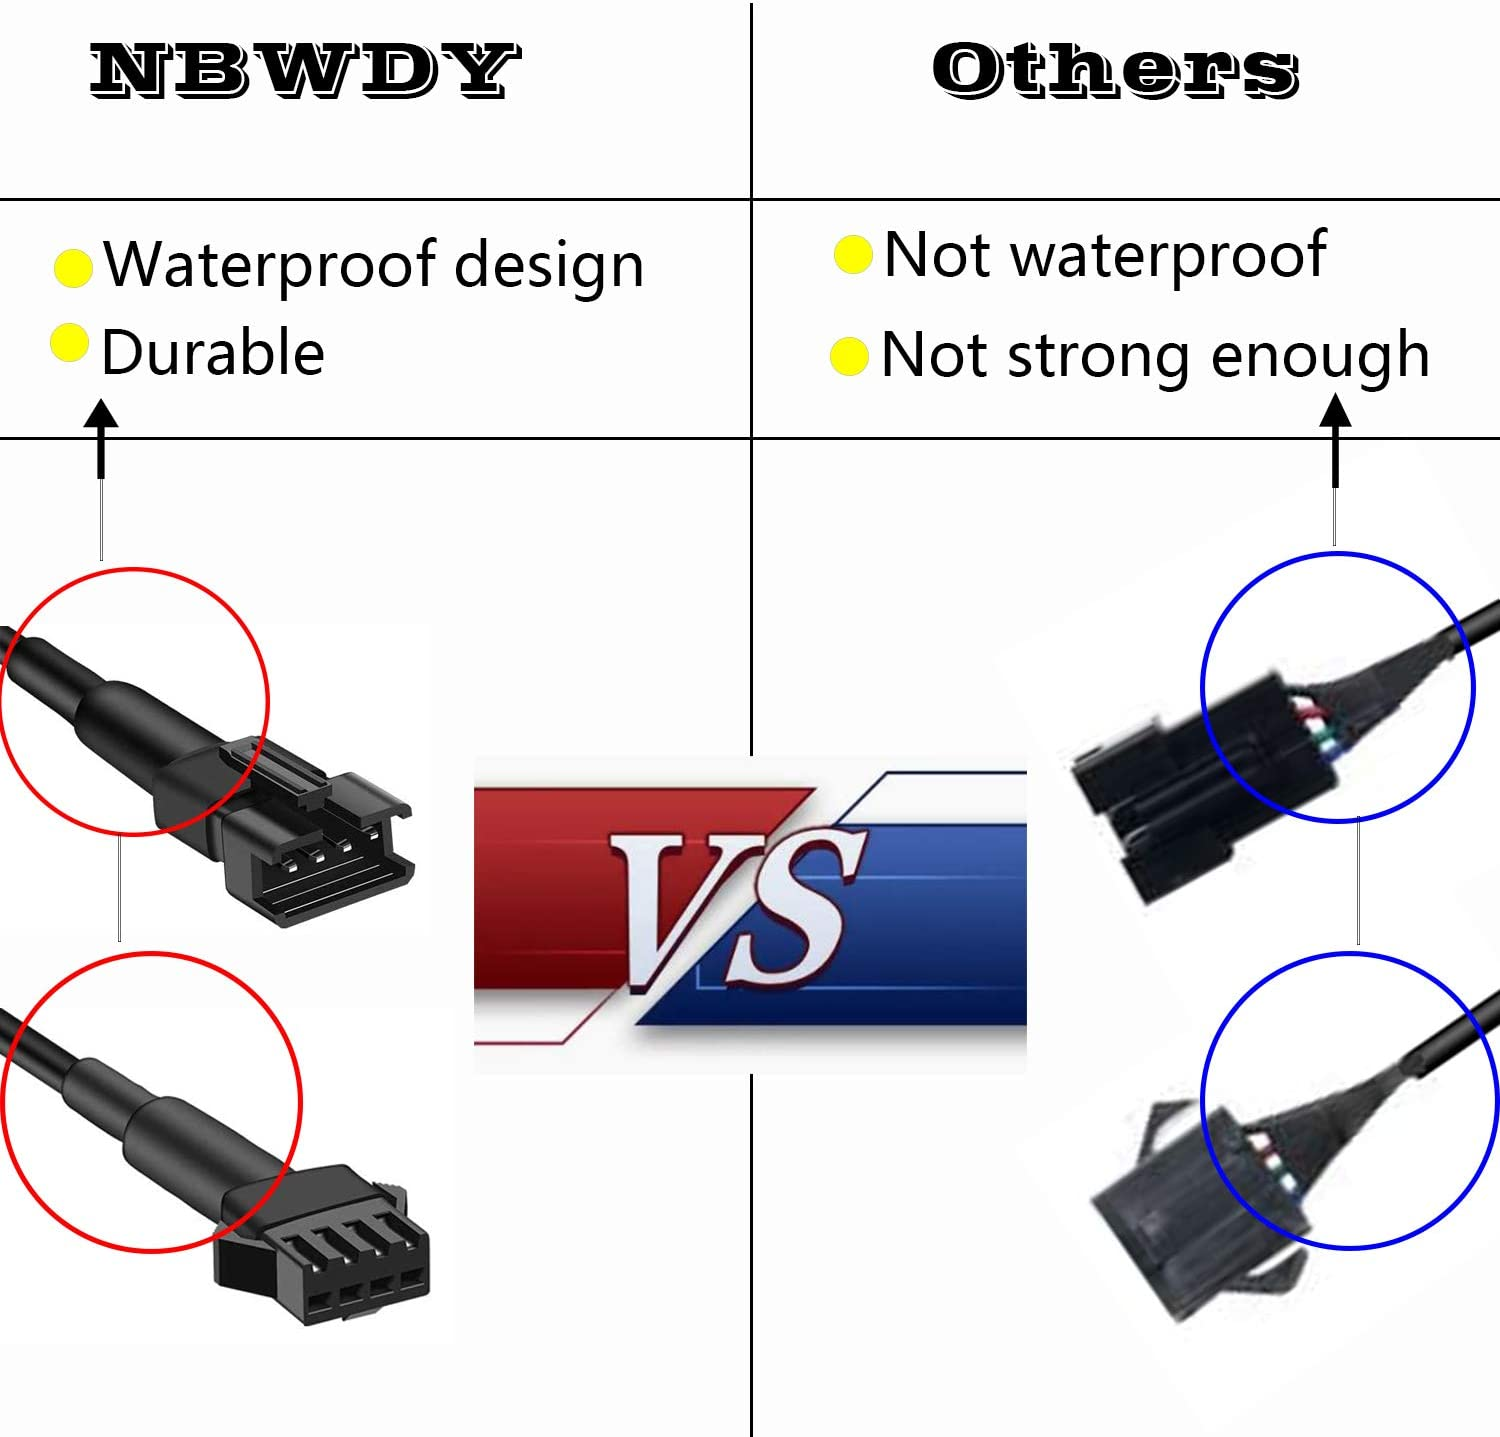 NBWDY 4pcs 60in//150cm RGB LED Multi-Color Accent Light Extension Cable Wire Cord Set for LED Motorcycle ATV Car Light Multi-Color Neon Strip